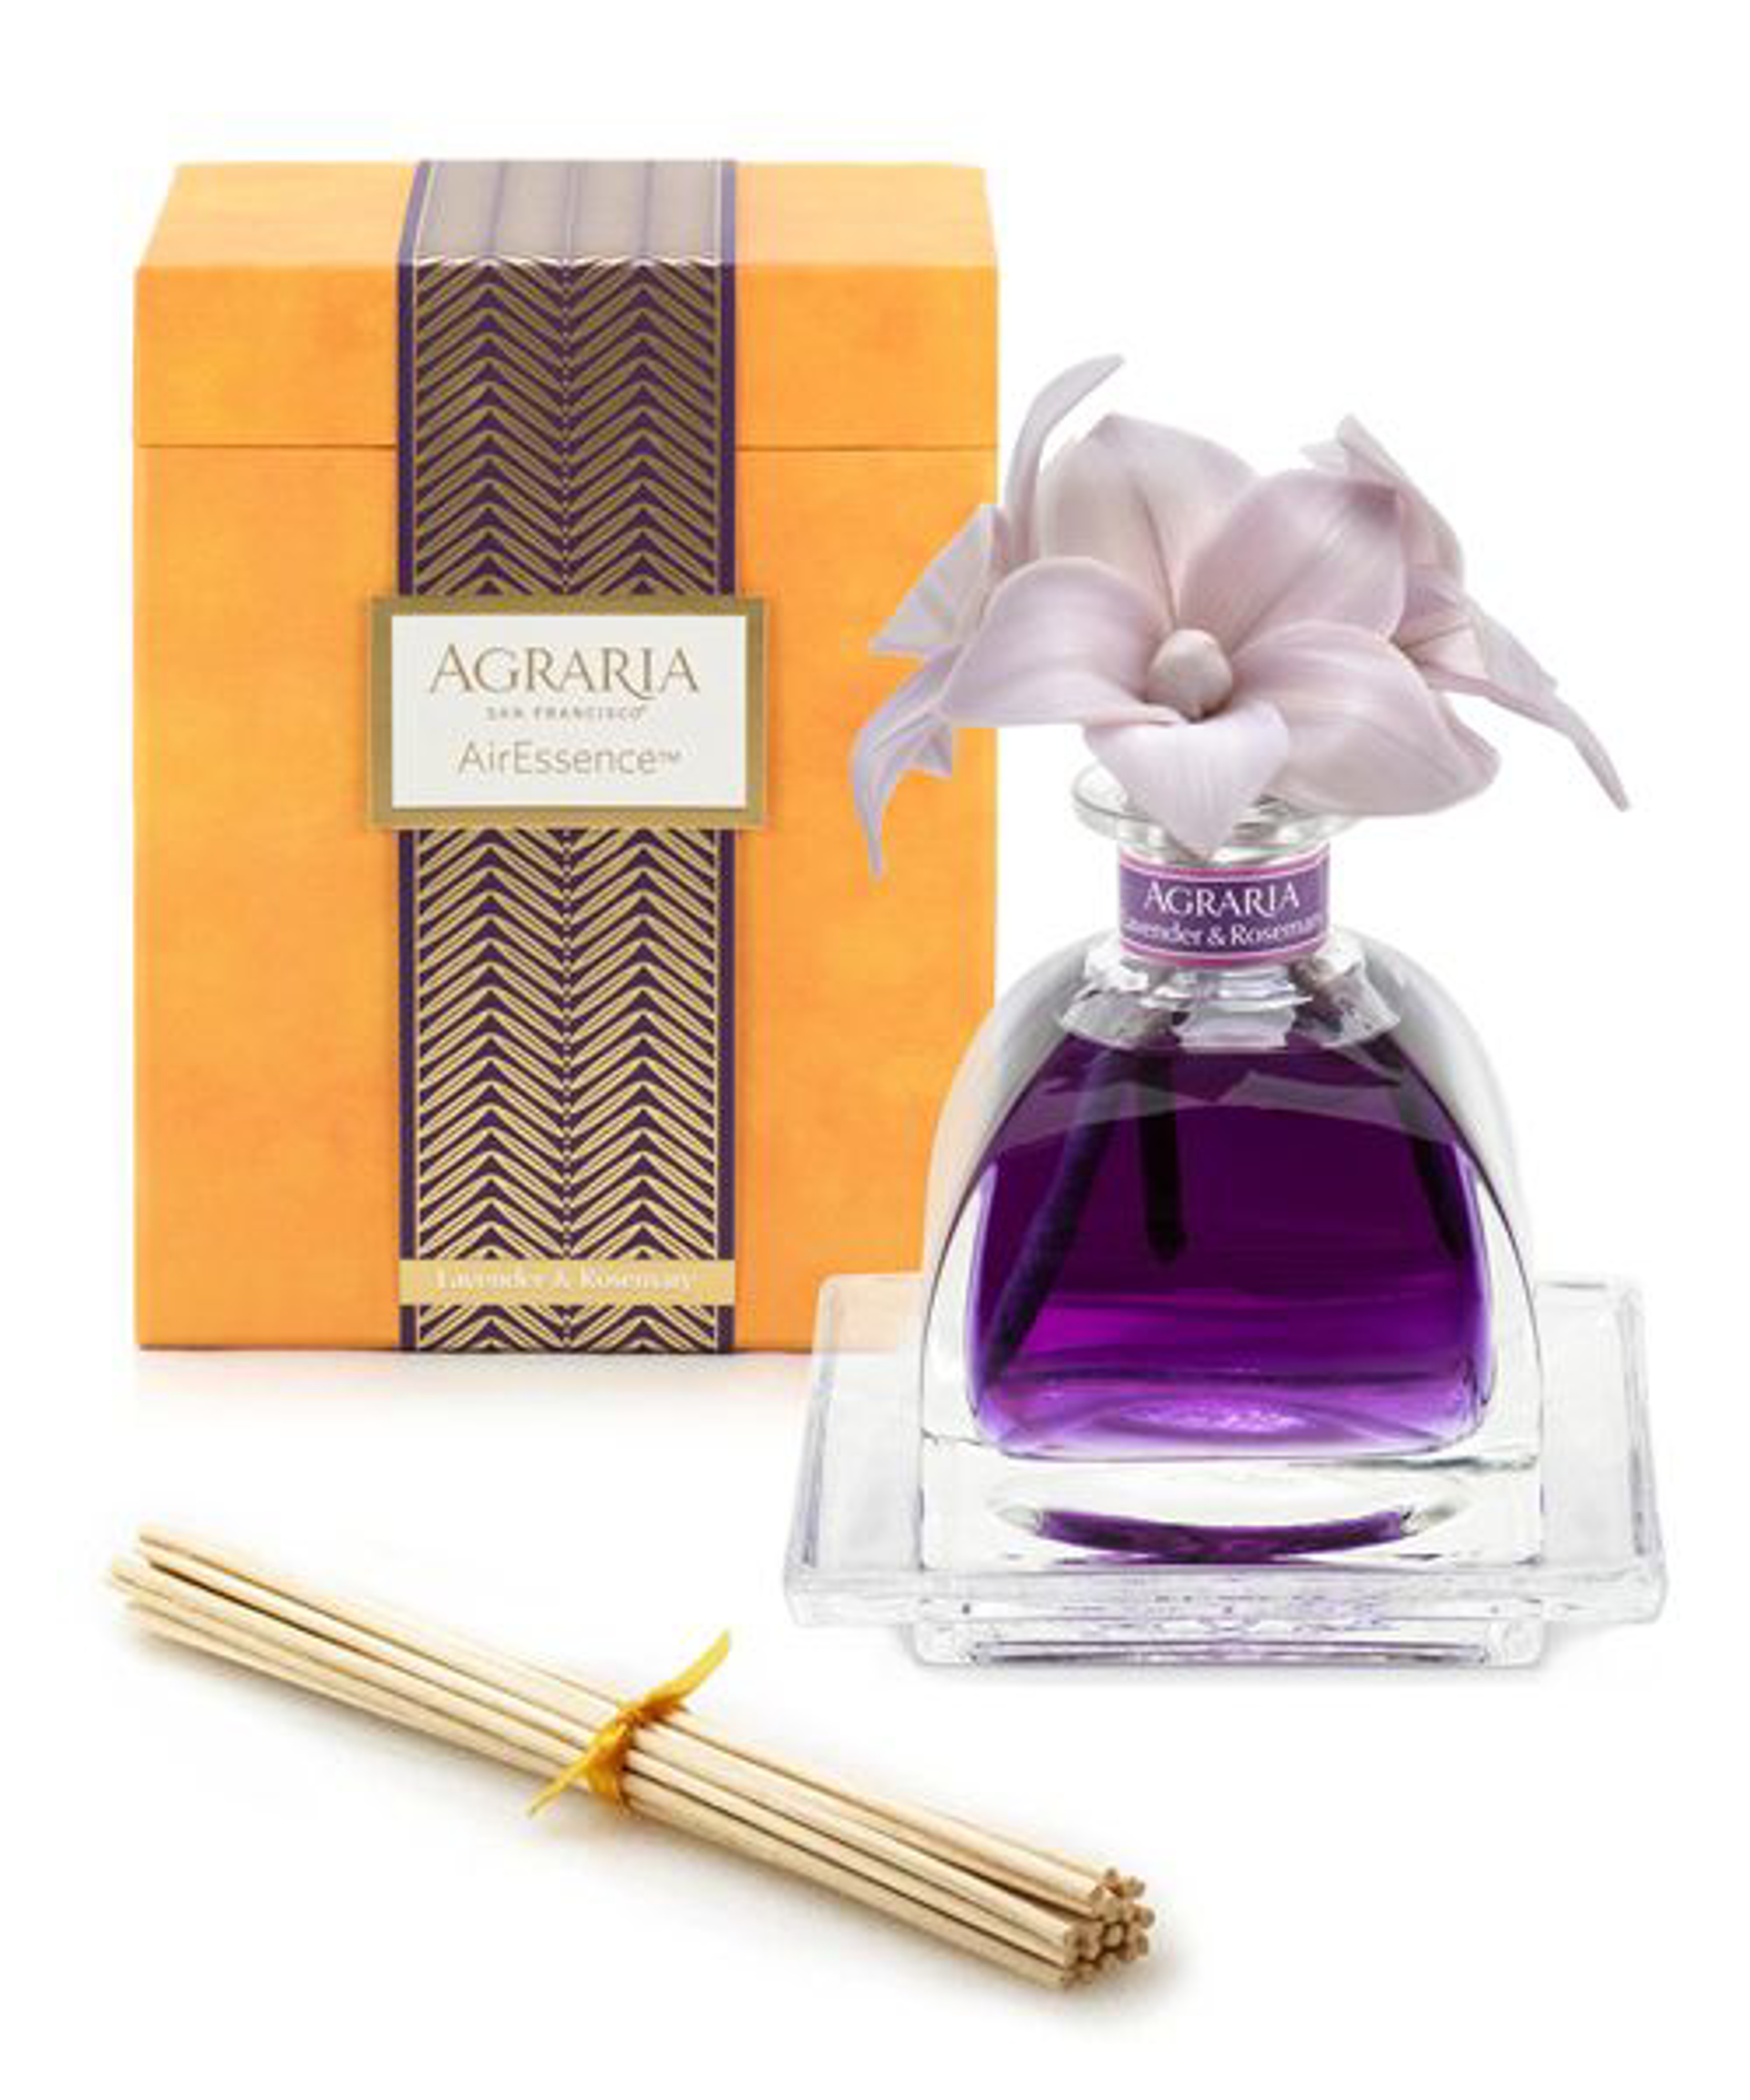 Lavender & Rosemary Air Essence Diffuser  7.4oz by Agraria Diffusers